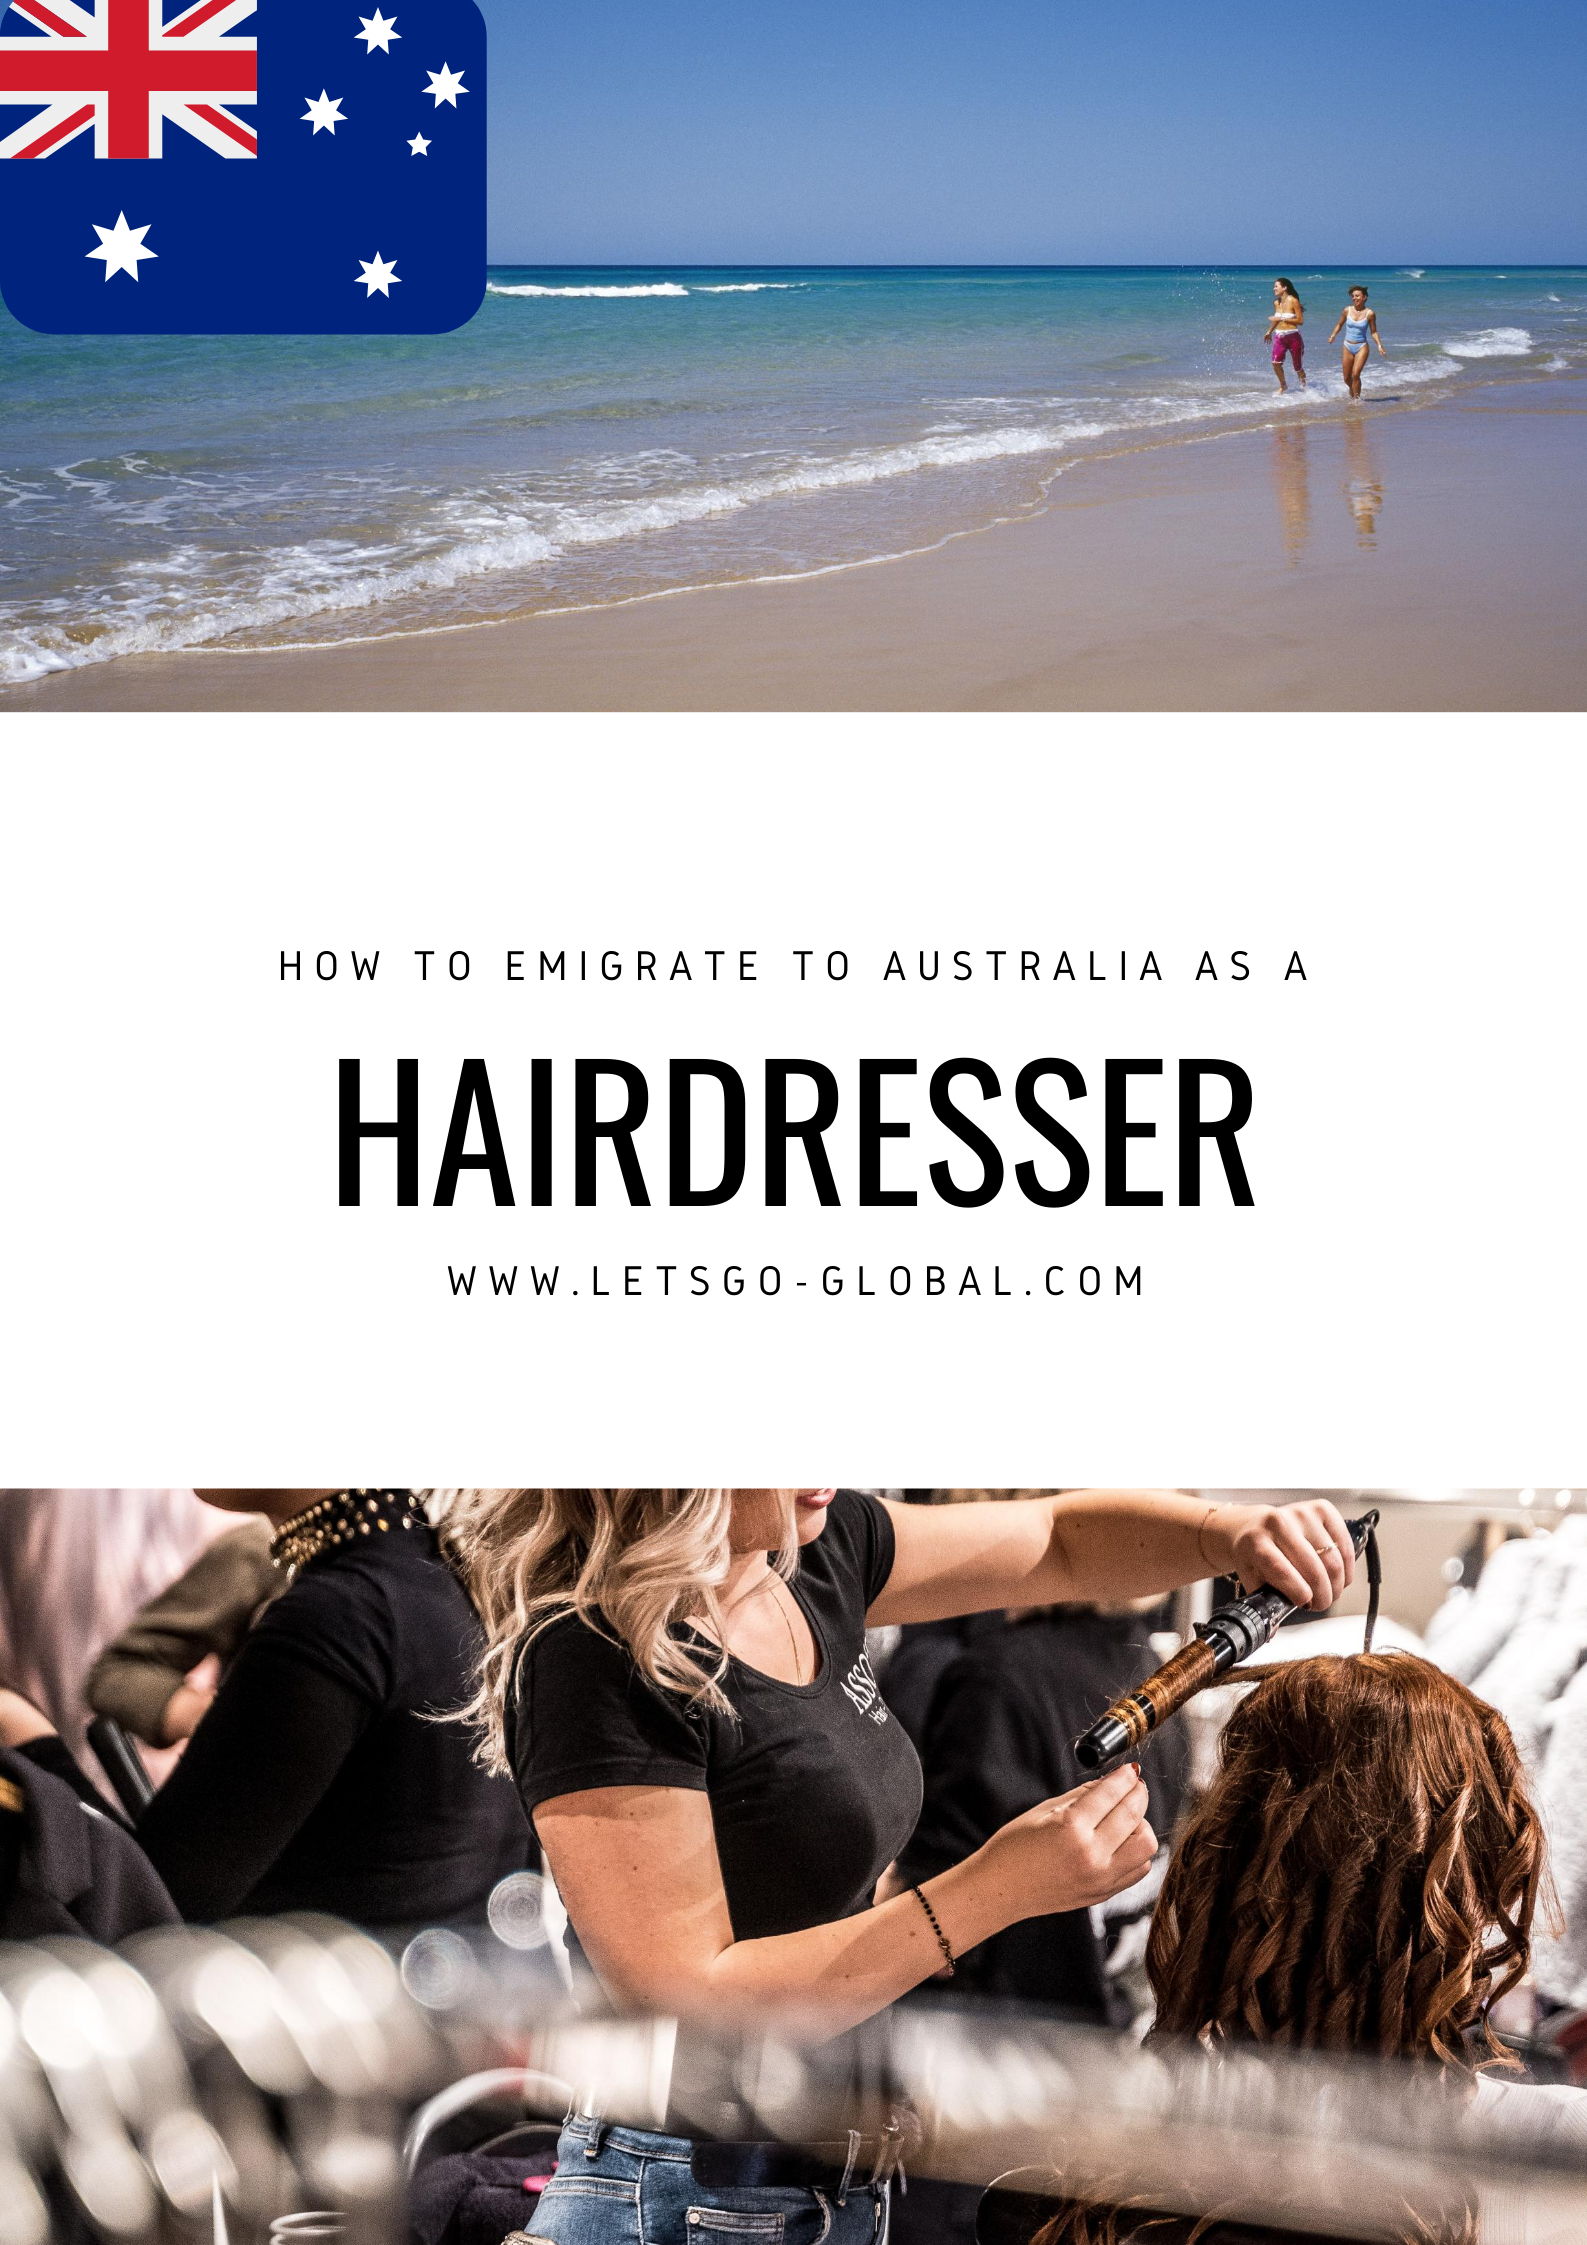 Migrate to Australia as a Hairdresser